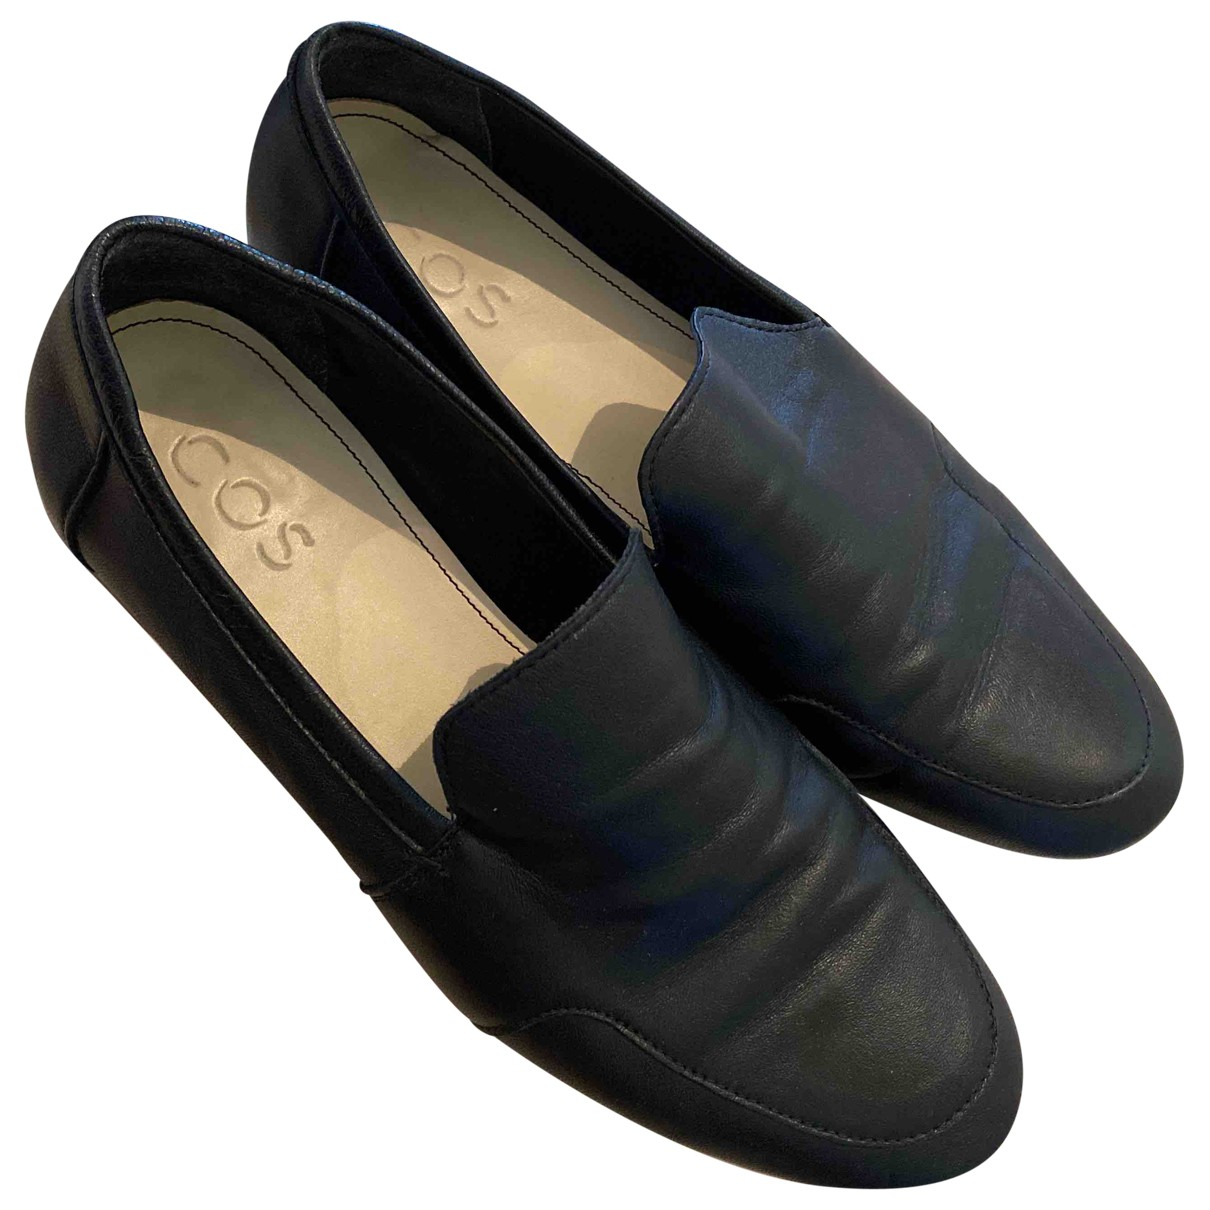 Cos \N Black Leather Flats for Women 38 IT